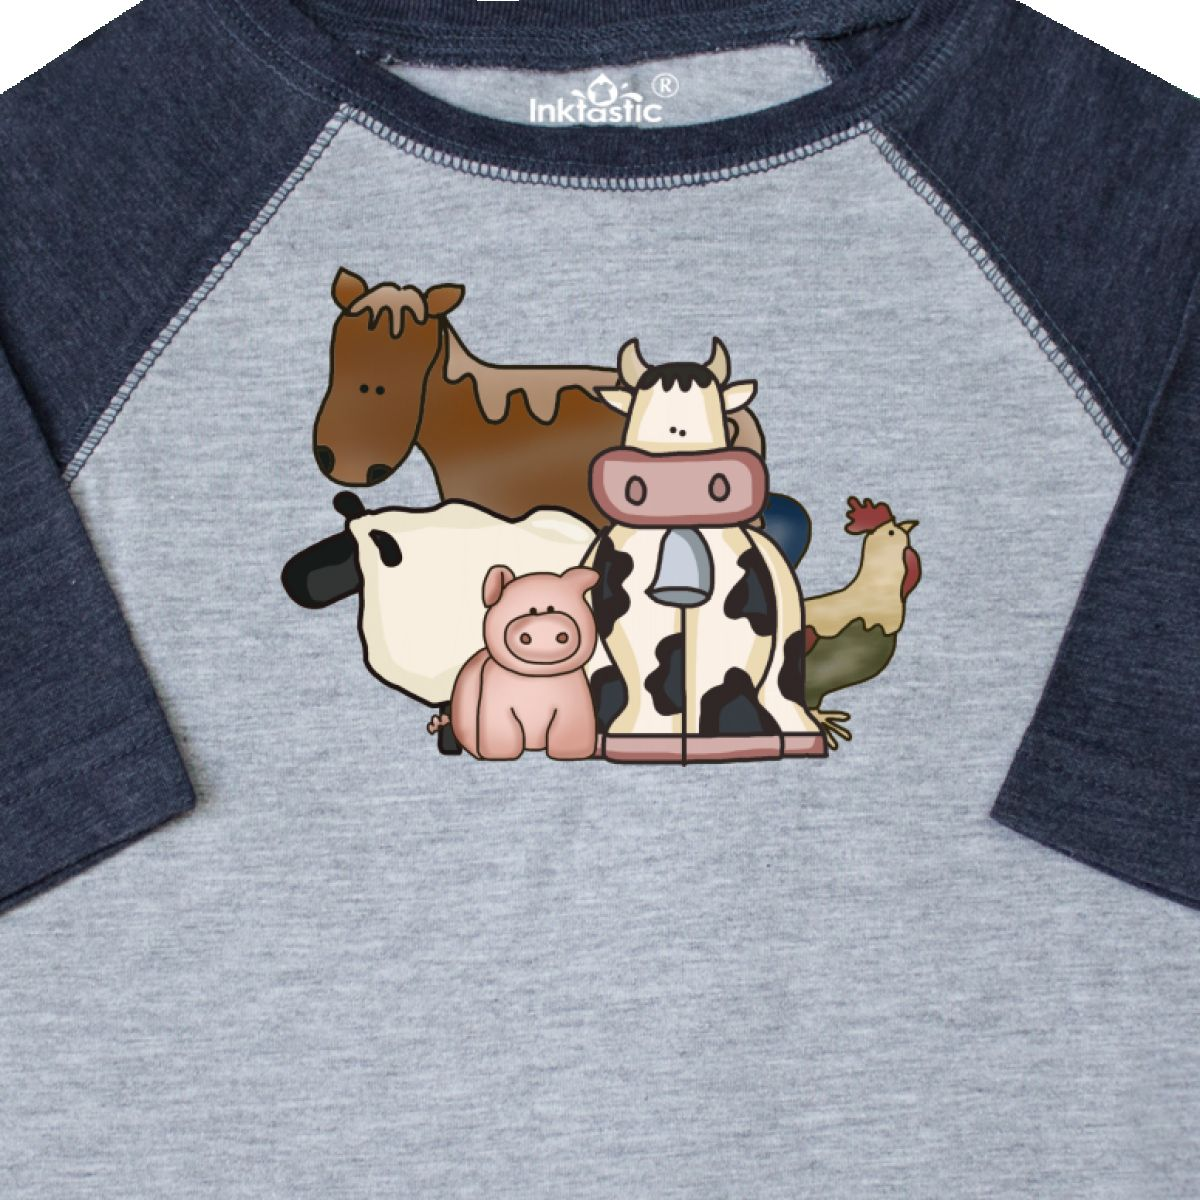 Inktastic-Critters-Toddler-T-Shirt-Horse-Sheep-Cow-Chicken-Pig-Farm-Animals-Gift thumbnail 6